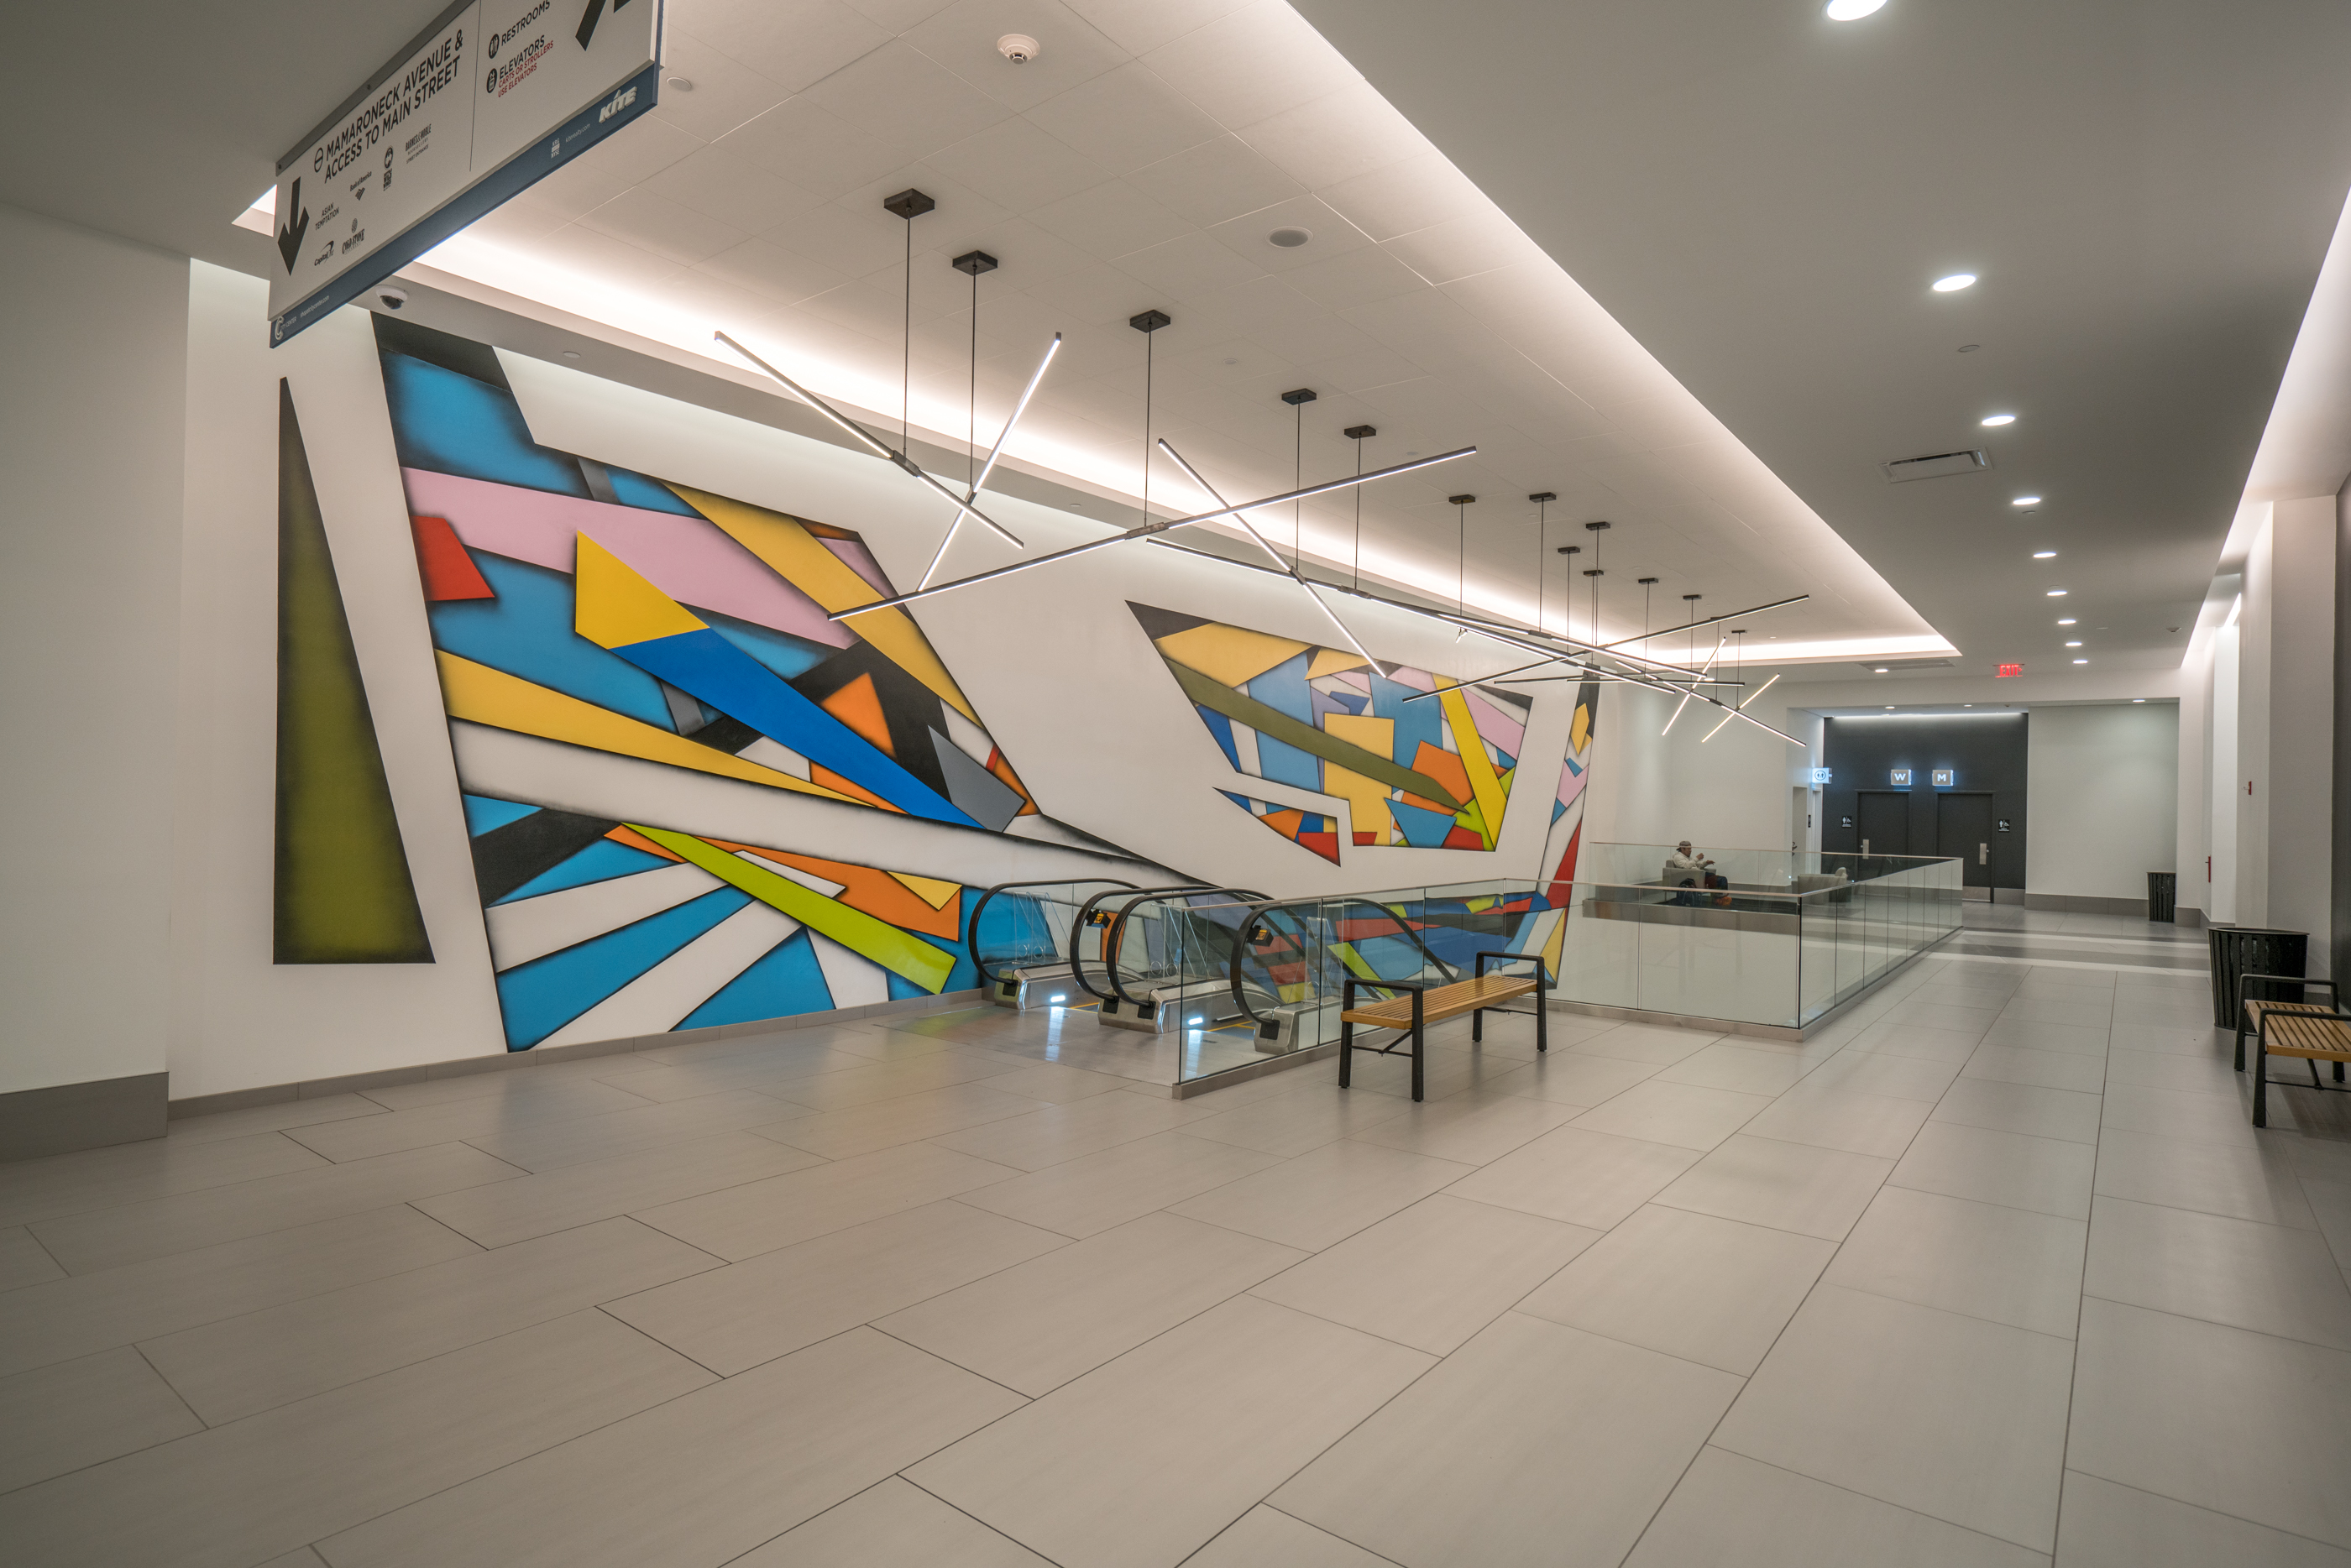 City Center escalator and wall mural